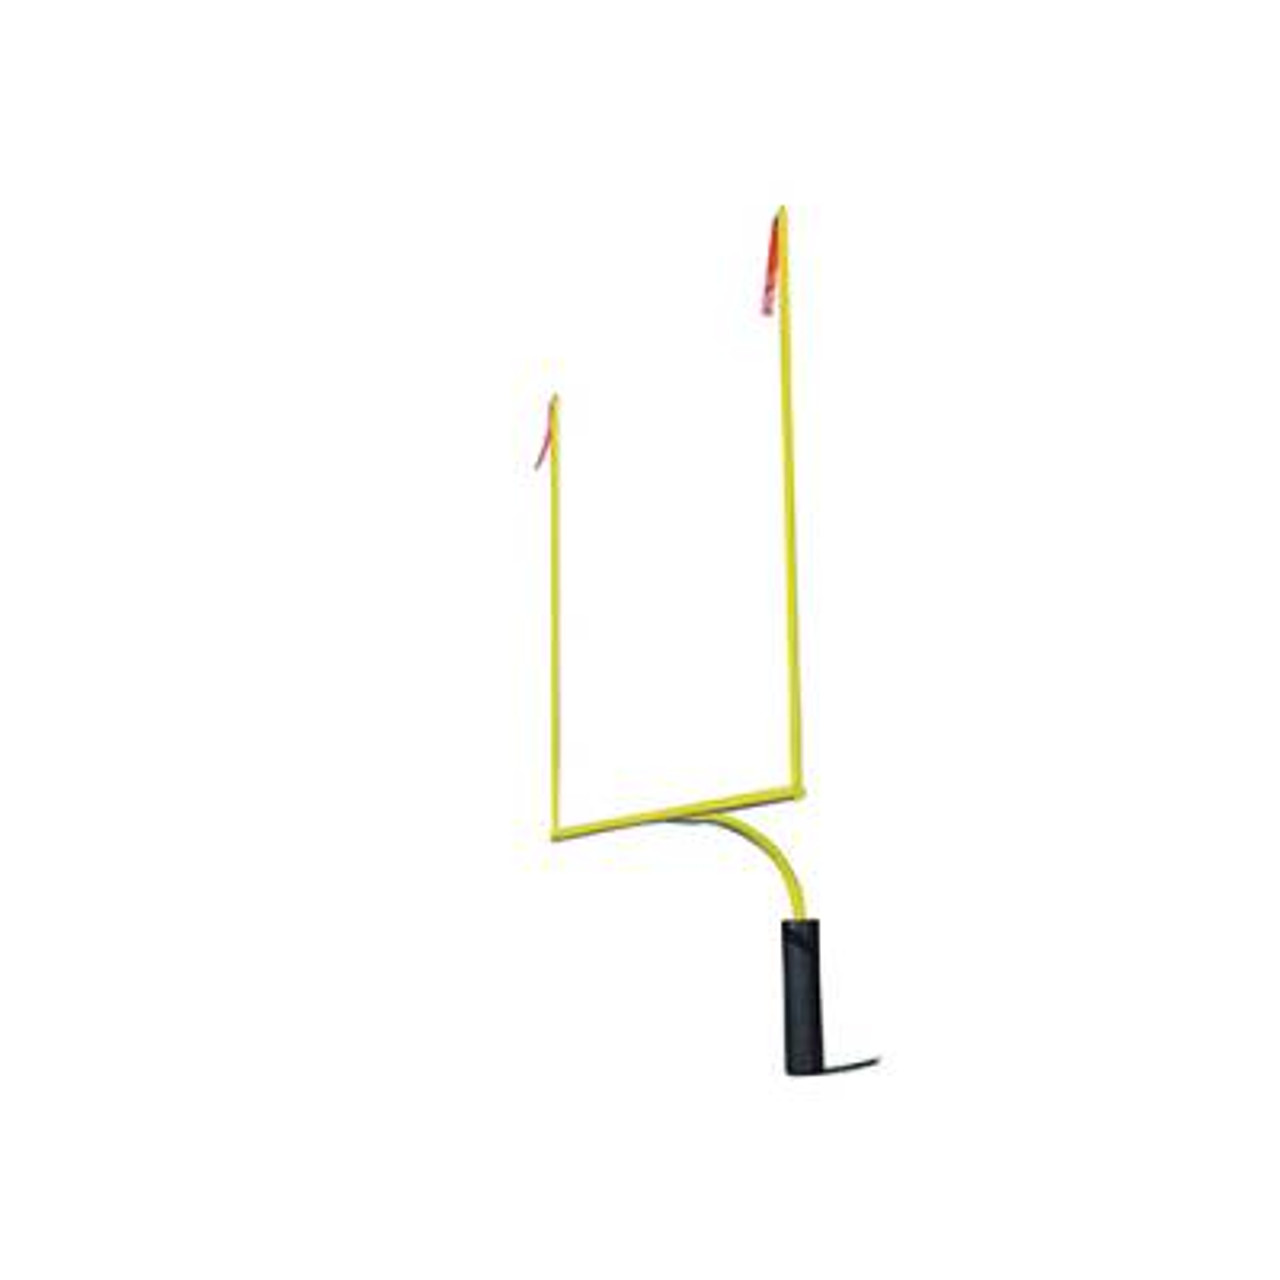 H.S. Football Goalposts with 30' Upright - Yellow